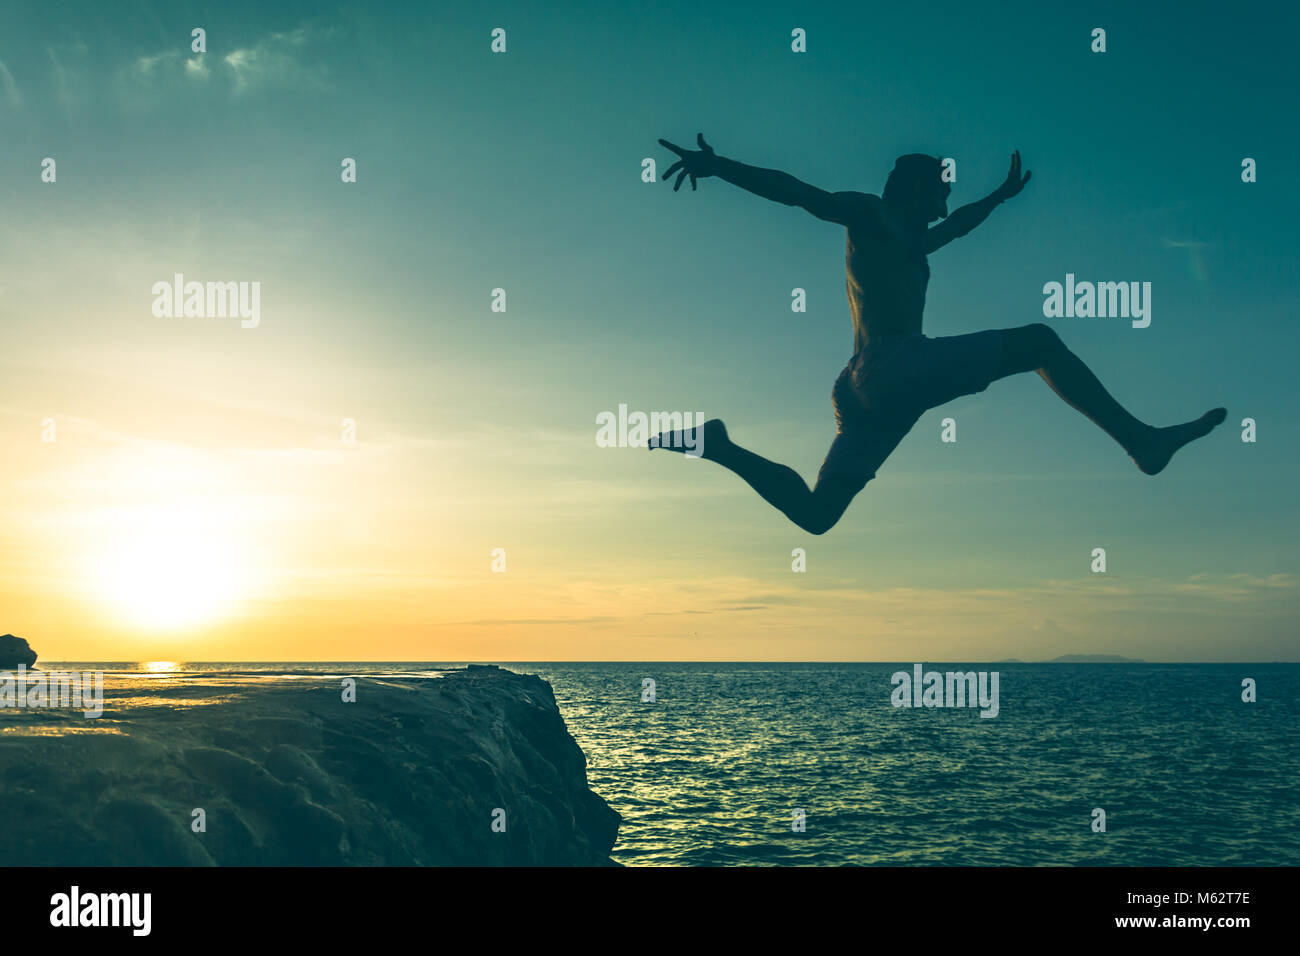 Man jumping over a cliff into the sea on sunset in Koh Phangan island, Thailand. Vintage effect. Three out of three - Stock Image